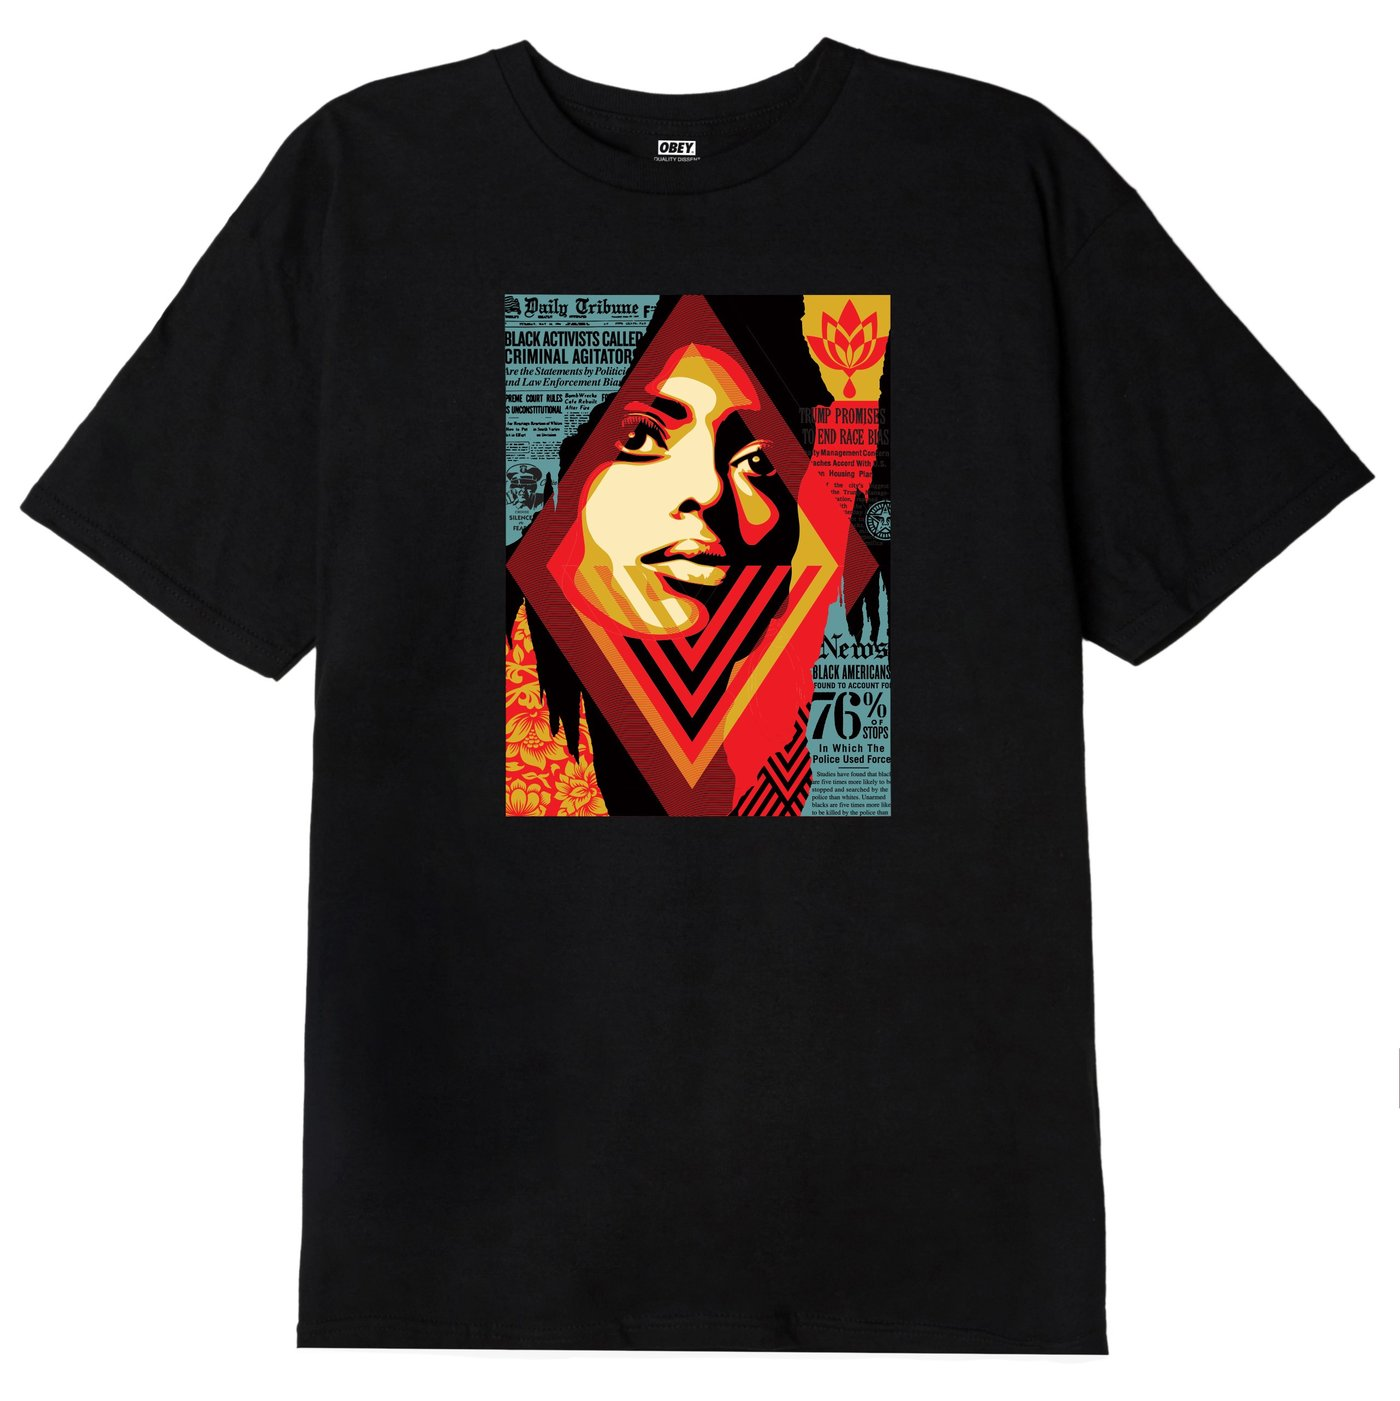 OBEY M'S T-SHIRTS OBEY BIAS BY NUMBERS CLASSIC T-SHIRT